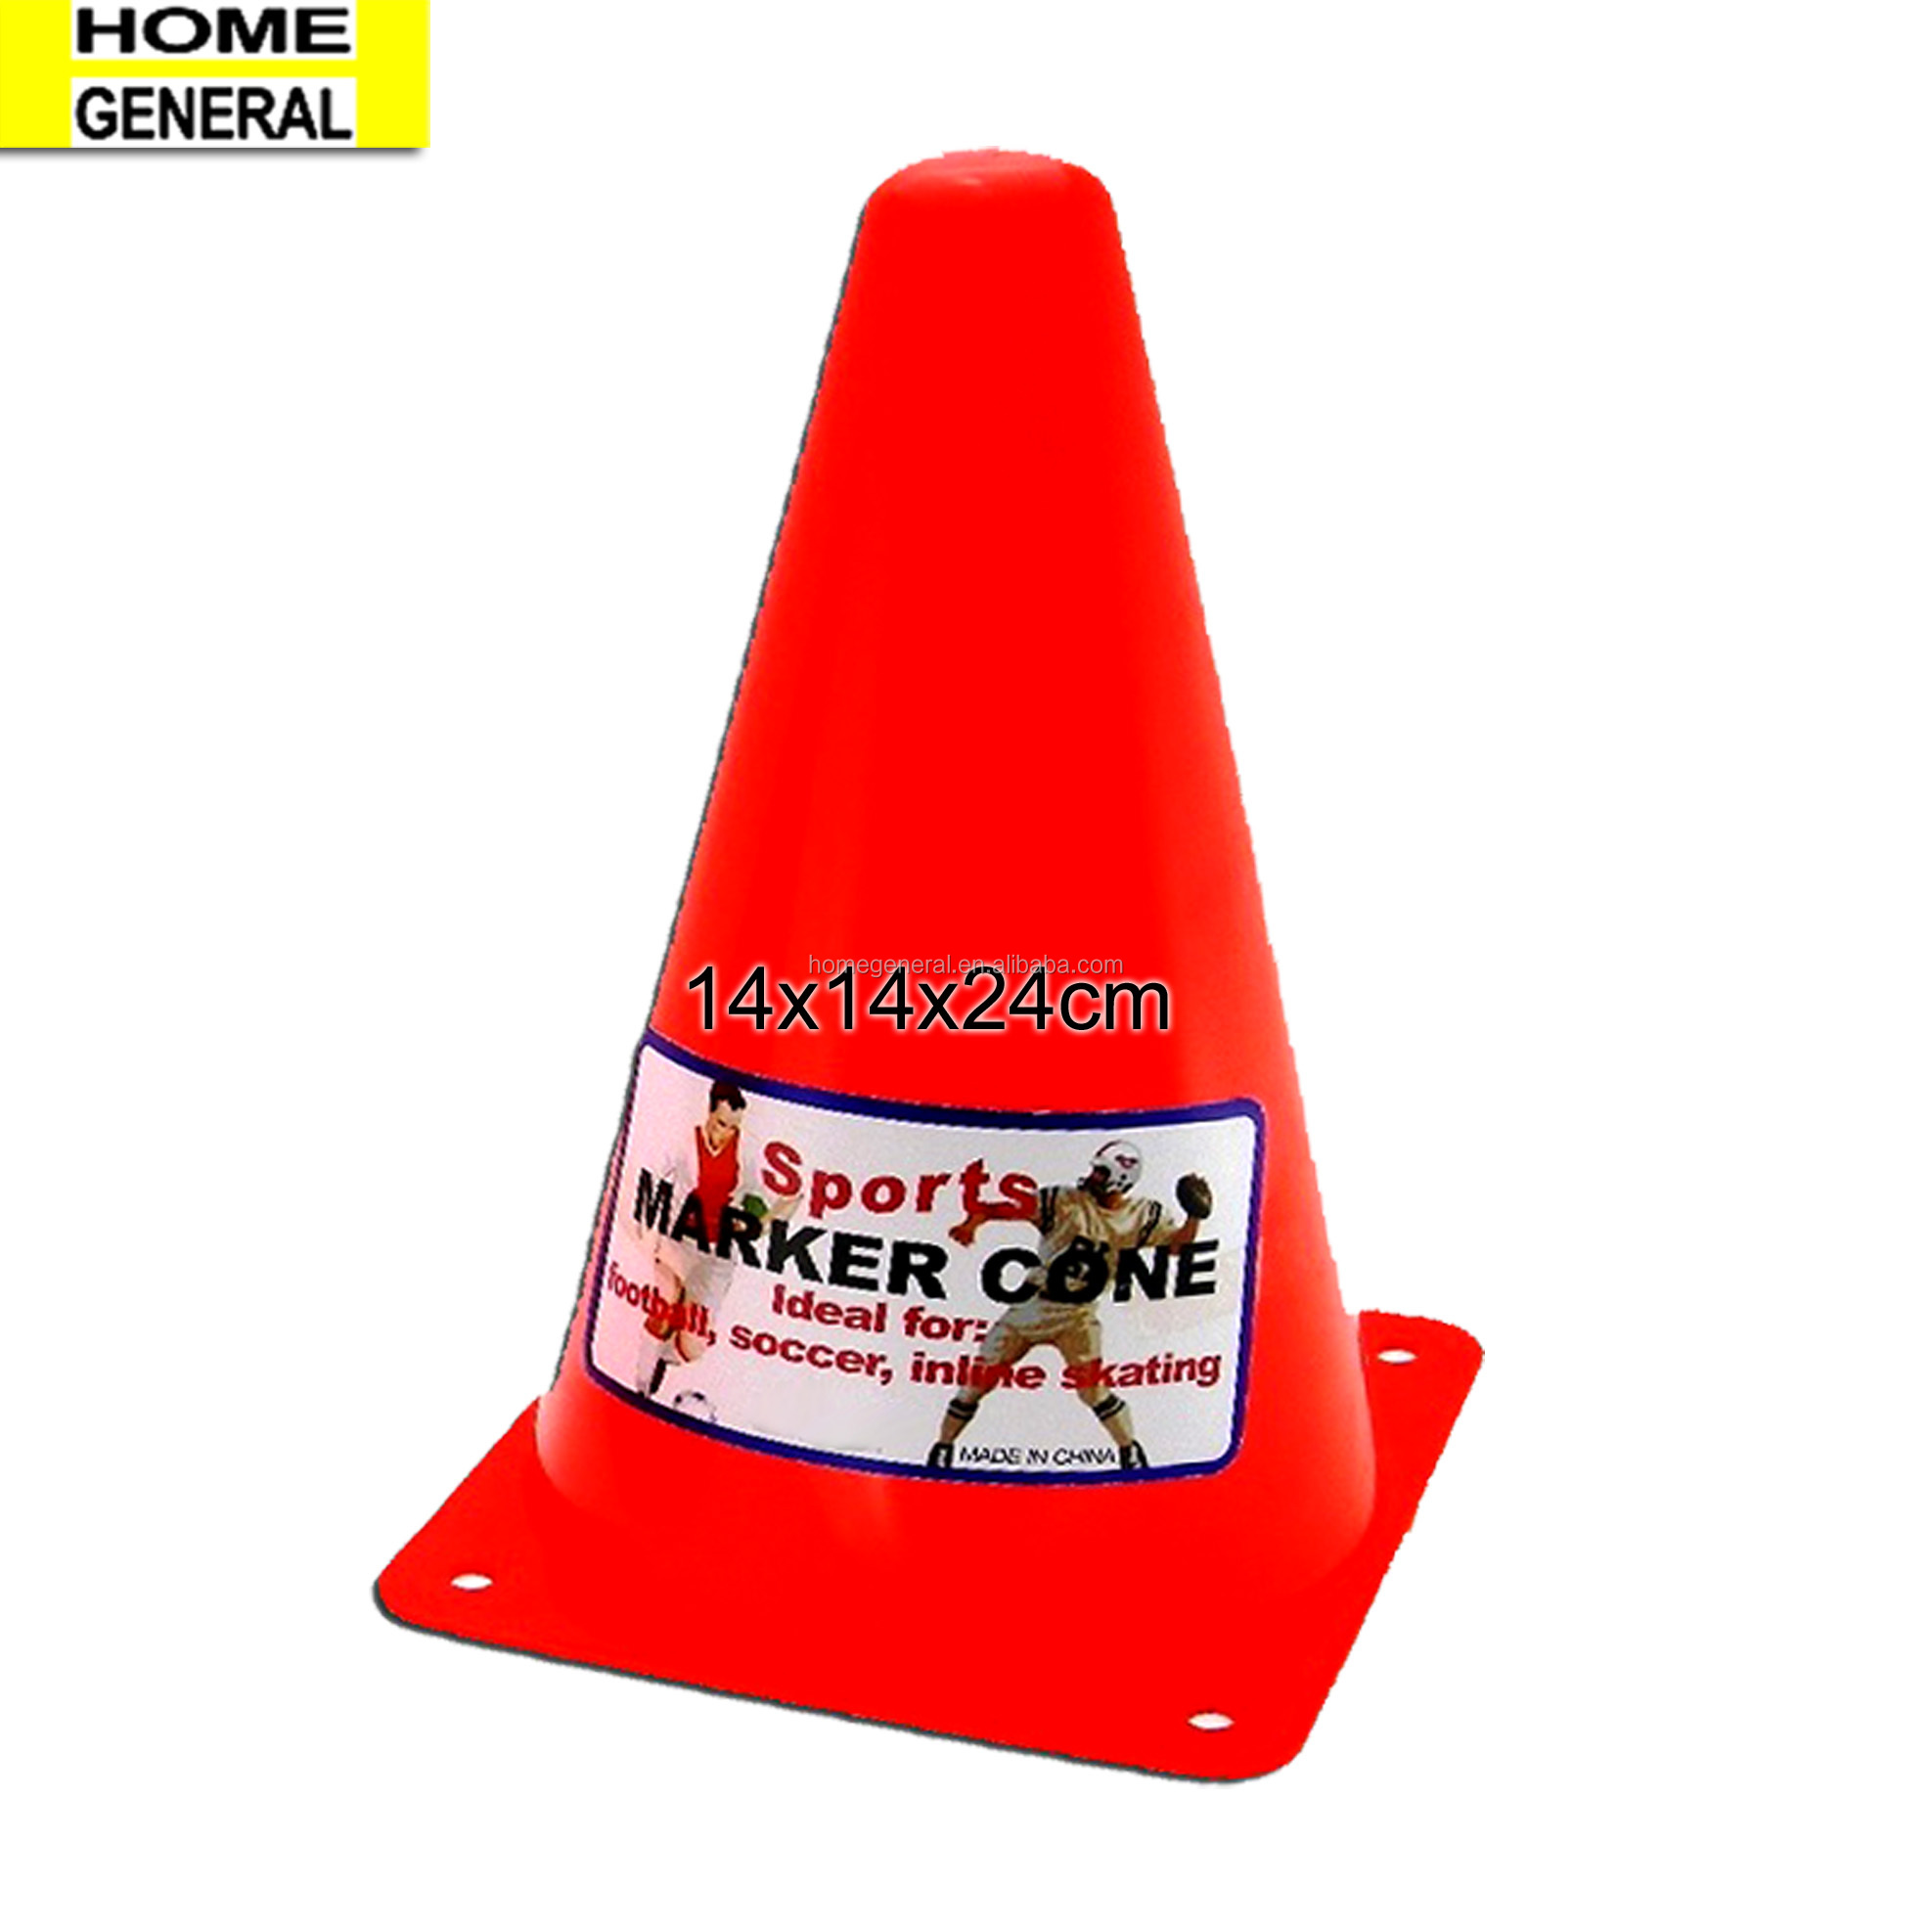 HOME GENERAL PLASTIC MARKER CONES SPORTS CONE FLEXIBLE CONES FOR SPORTS TRAINING CONES OBSTACLE CONES